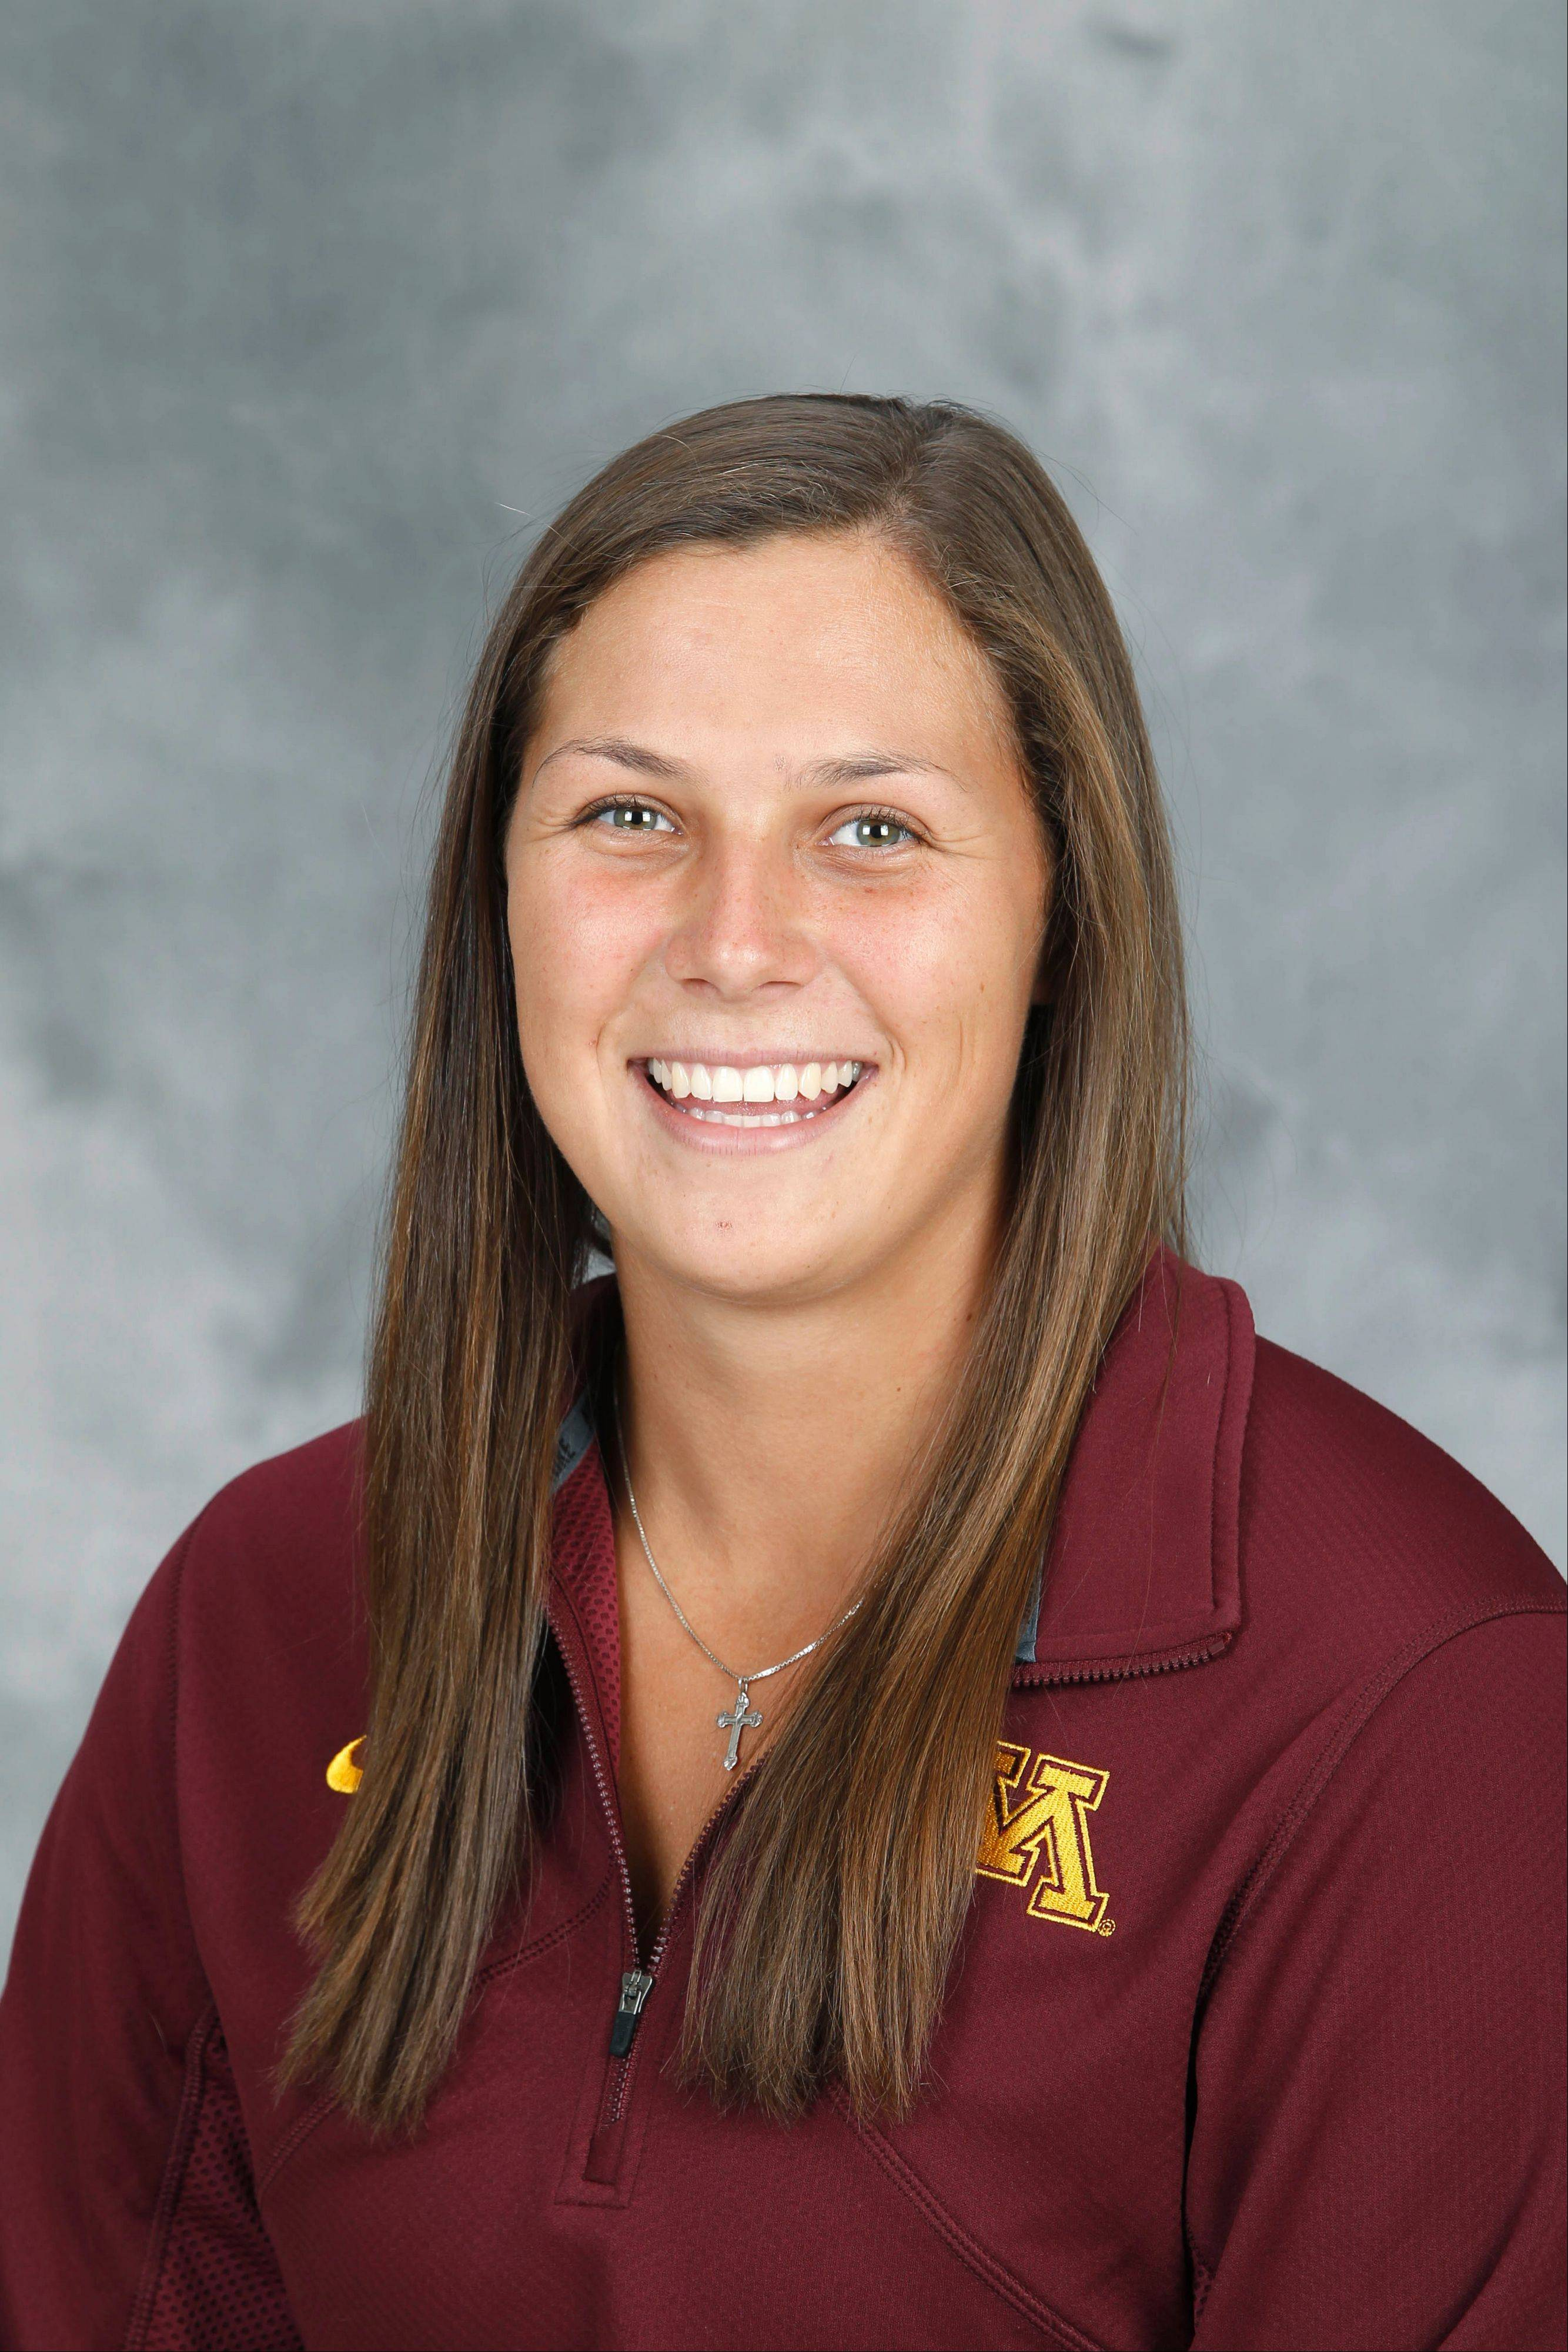 Buffalo Grove native Megan Bozek is a co-captain on the undefeated University of Minnesota women's hockey team, and a contender for the 2014 Olympic team.